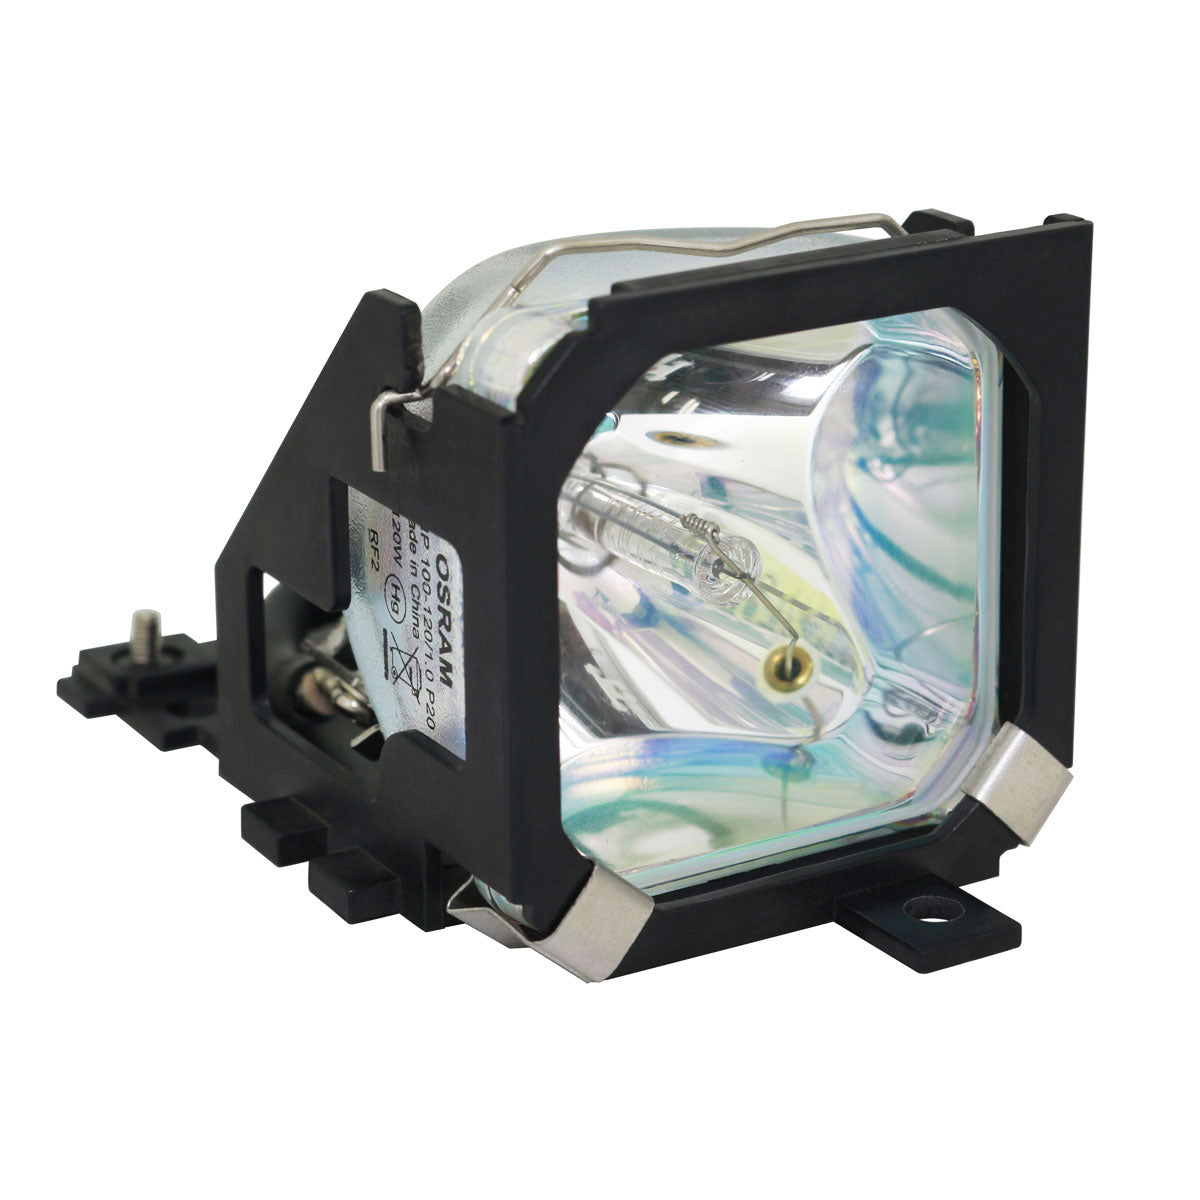 Sony LMP-H120 Osram Projector Lamp Module